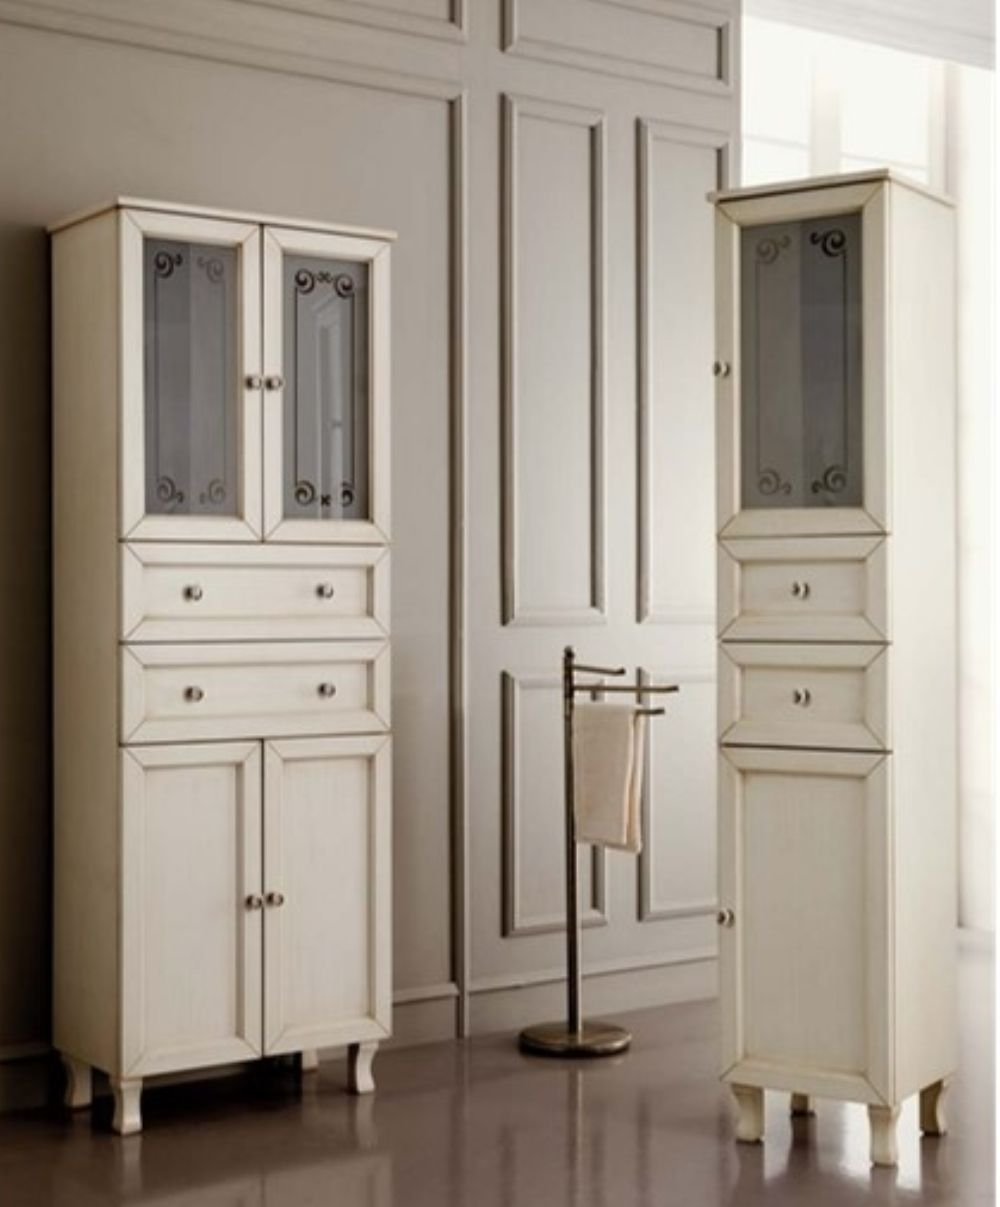 Colonne Bagno Ikea ~ duylinh for